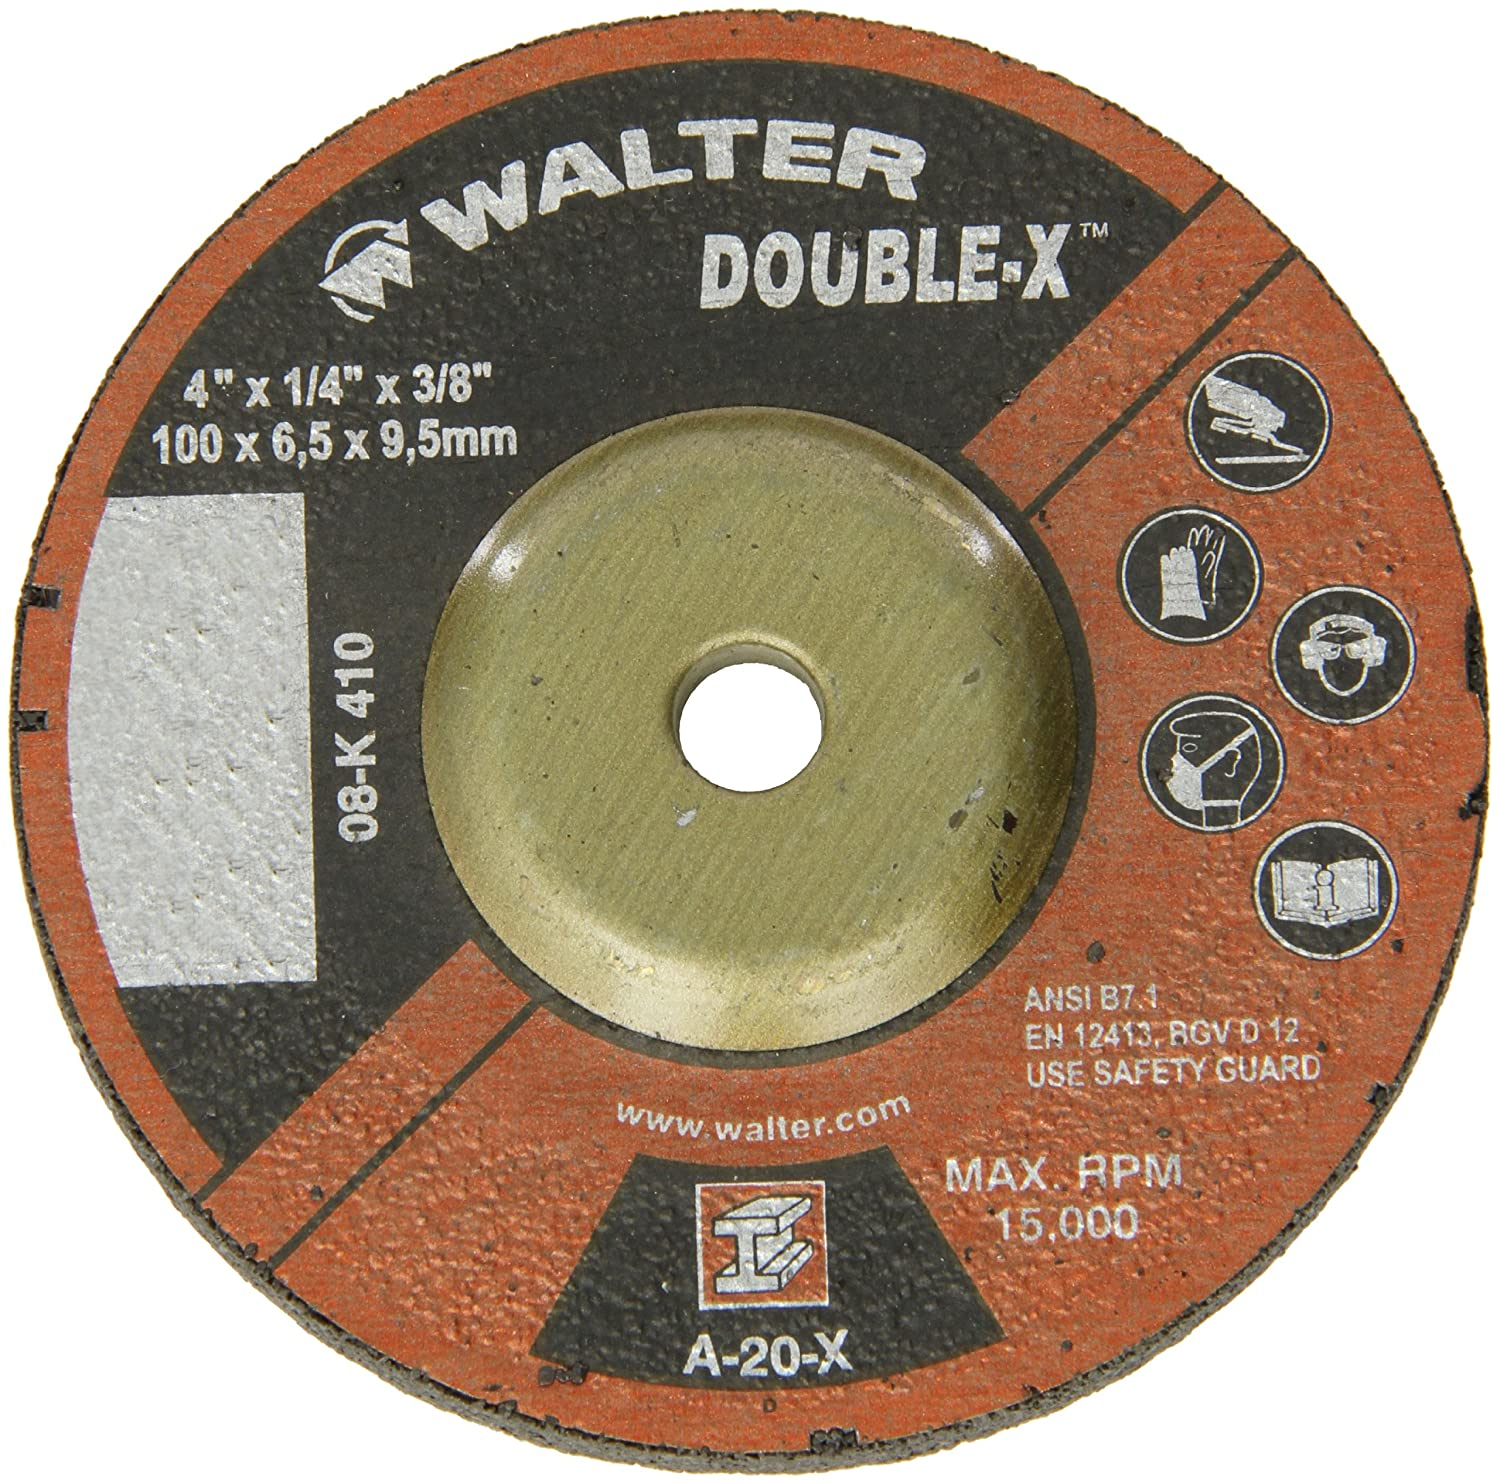 Abrasive Wheels and Discs Walter Surface Technologies A-16-X Grit Pack of 10 Abrasive Finishing Wheel with Arbor Hole Fastening Walter 08K905 HP XX Grinding Wheel - 9 in